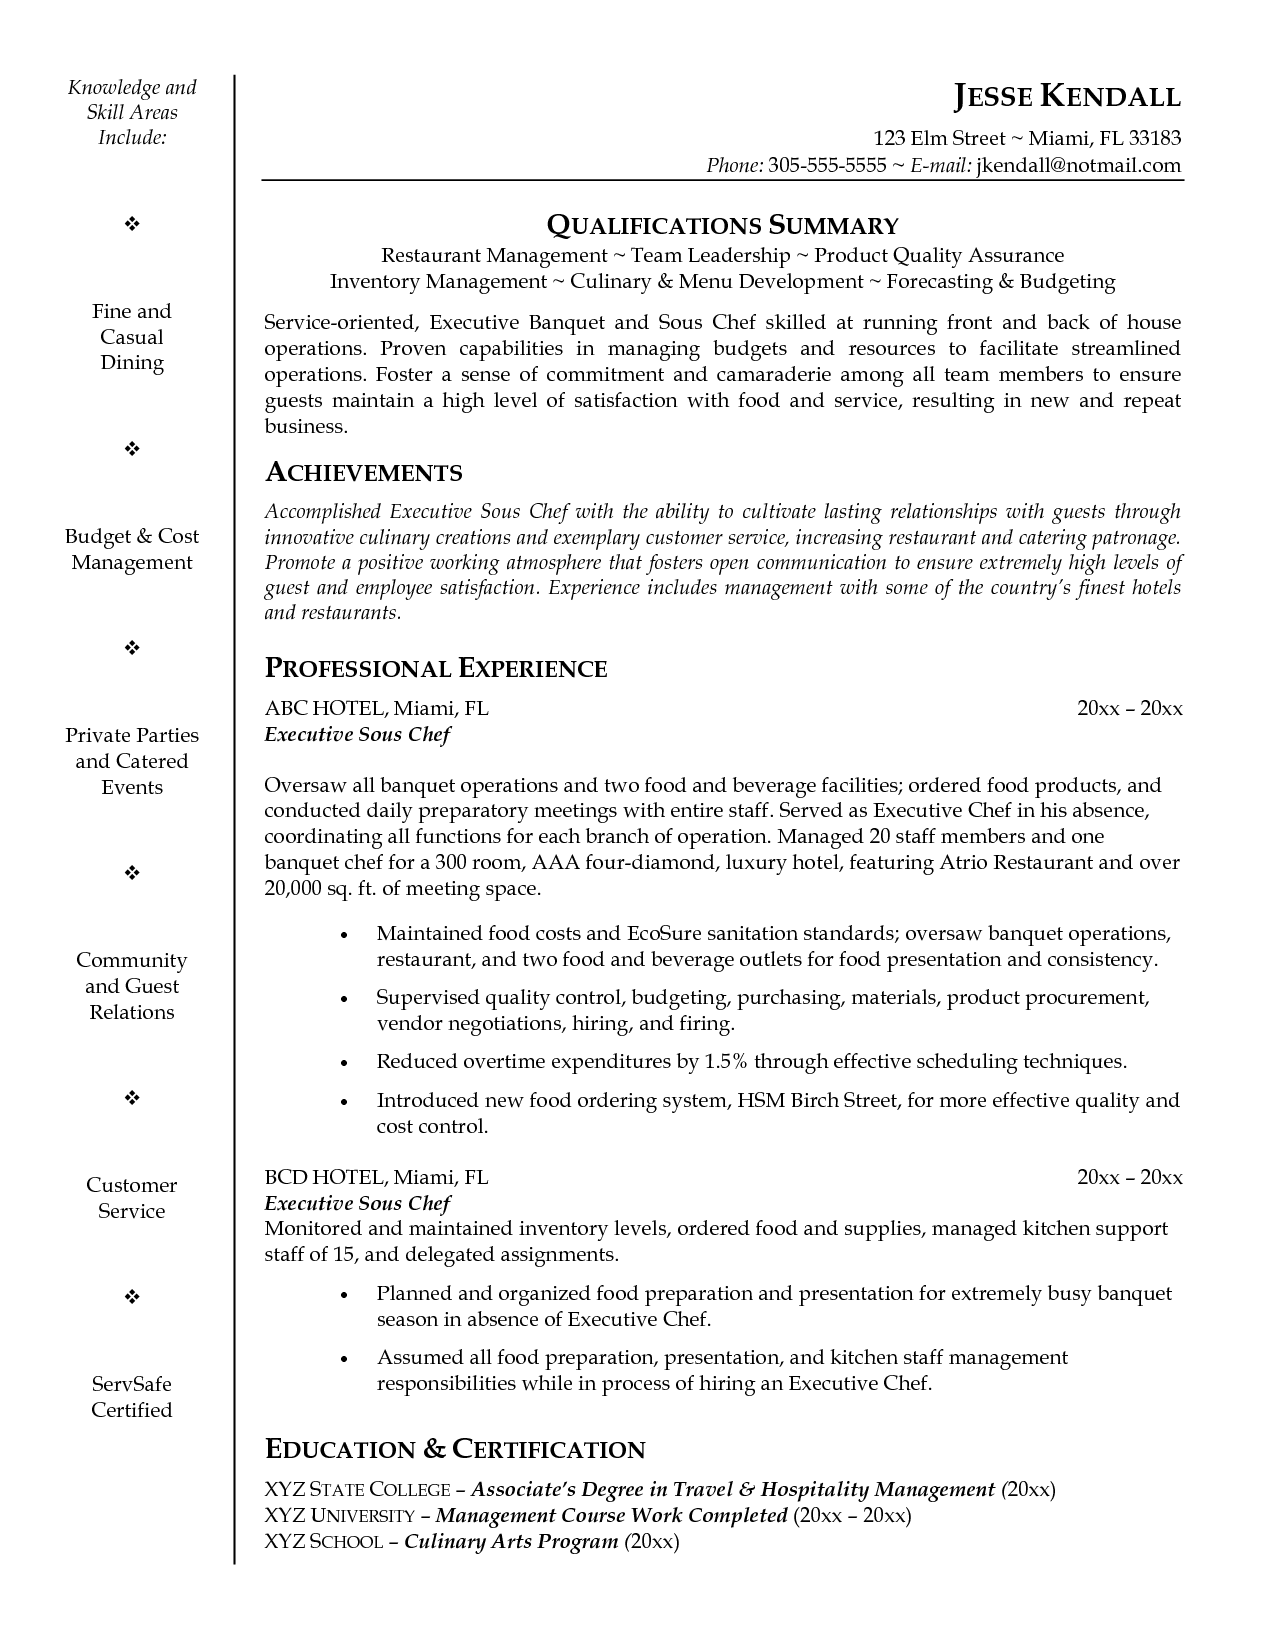 executive sous chef resume example sous chef job description resume by jesse kendall - Example Of Resume Cover Letters